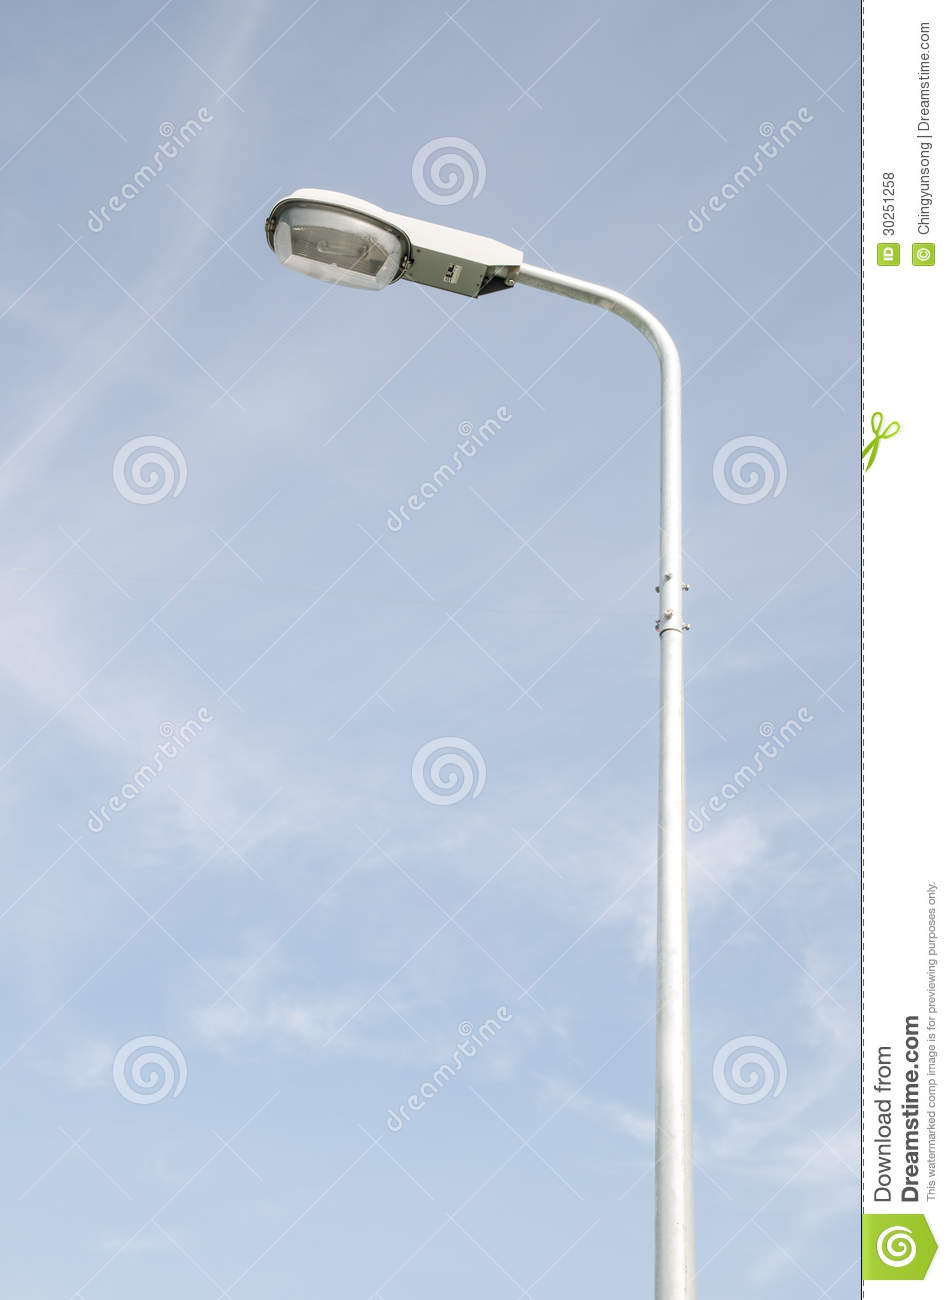 Lamp Post Electricity Industry Stock Photo - Image of light ... for Street Lamp Post Design  575lpg